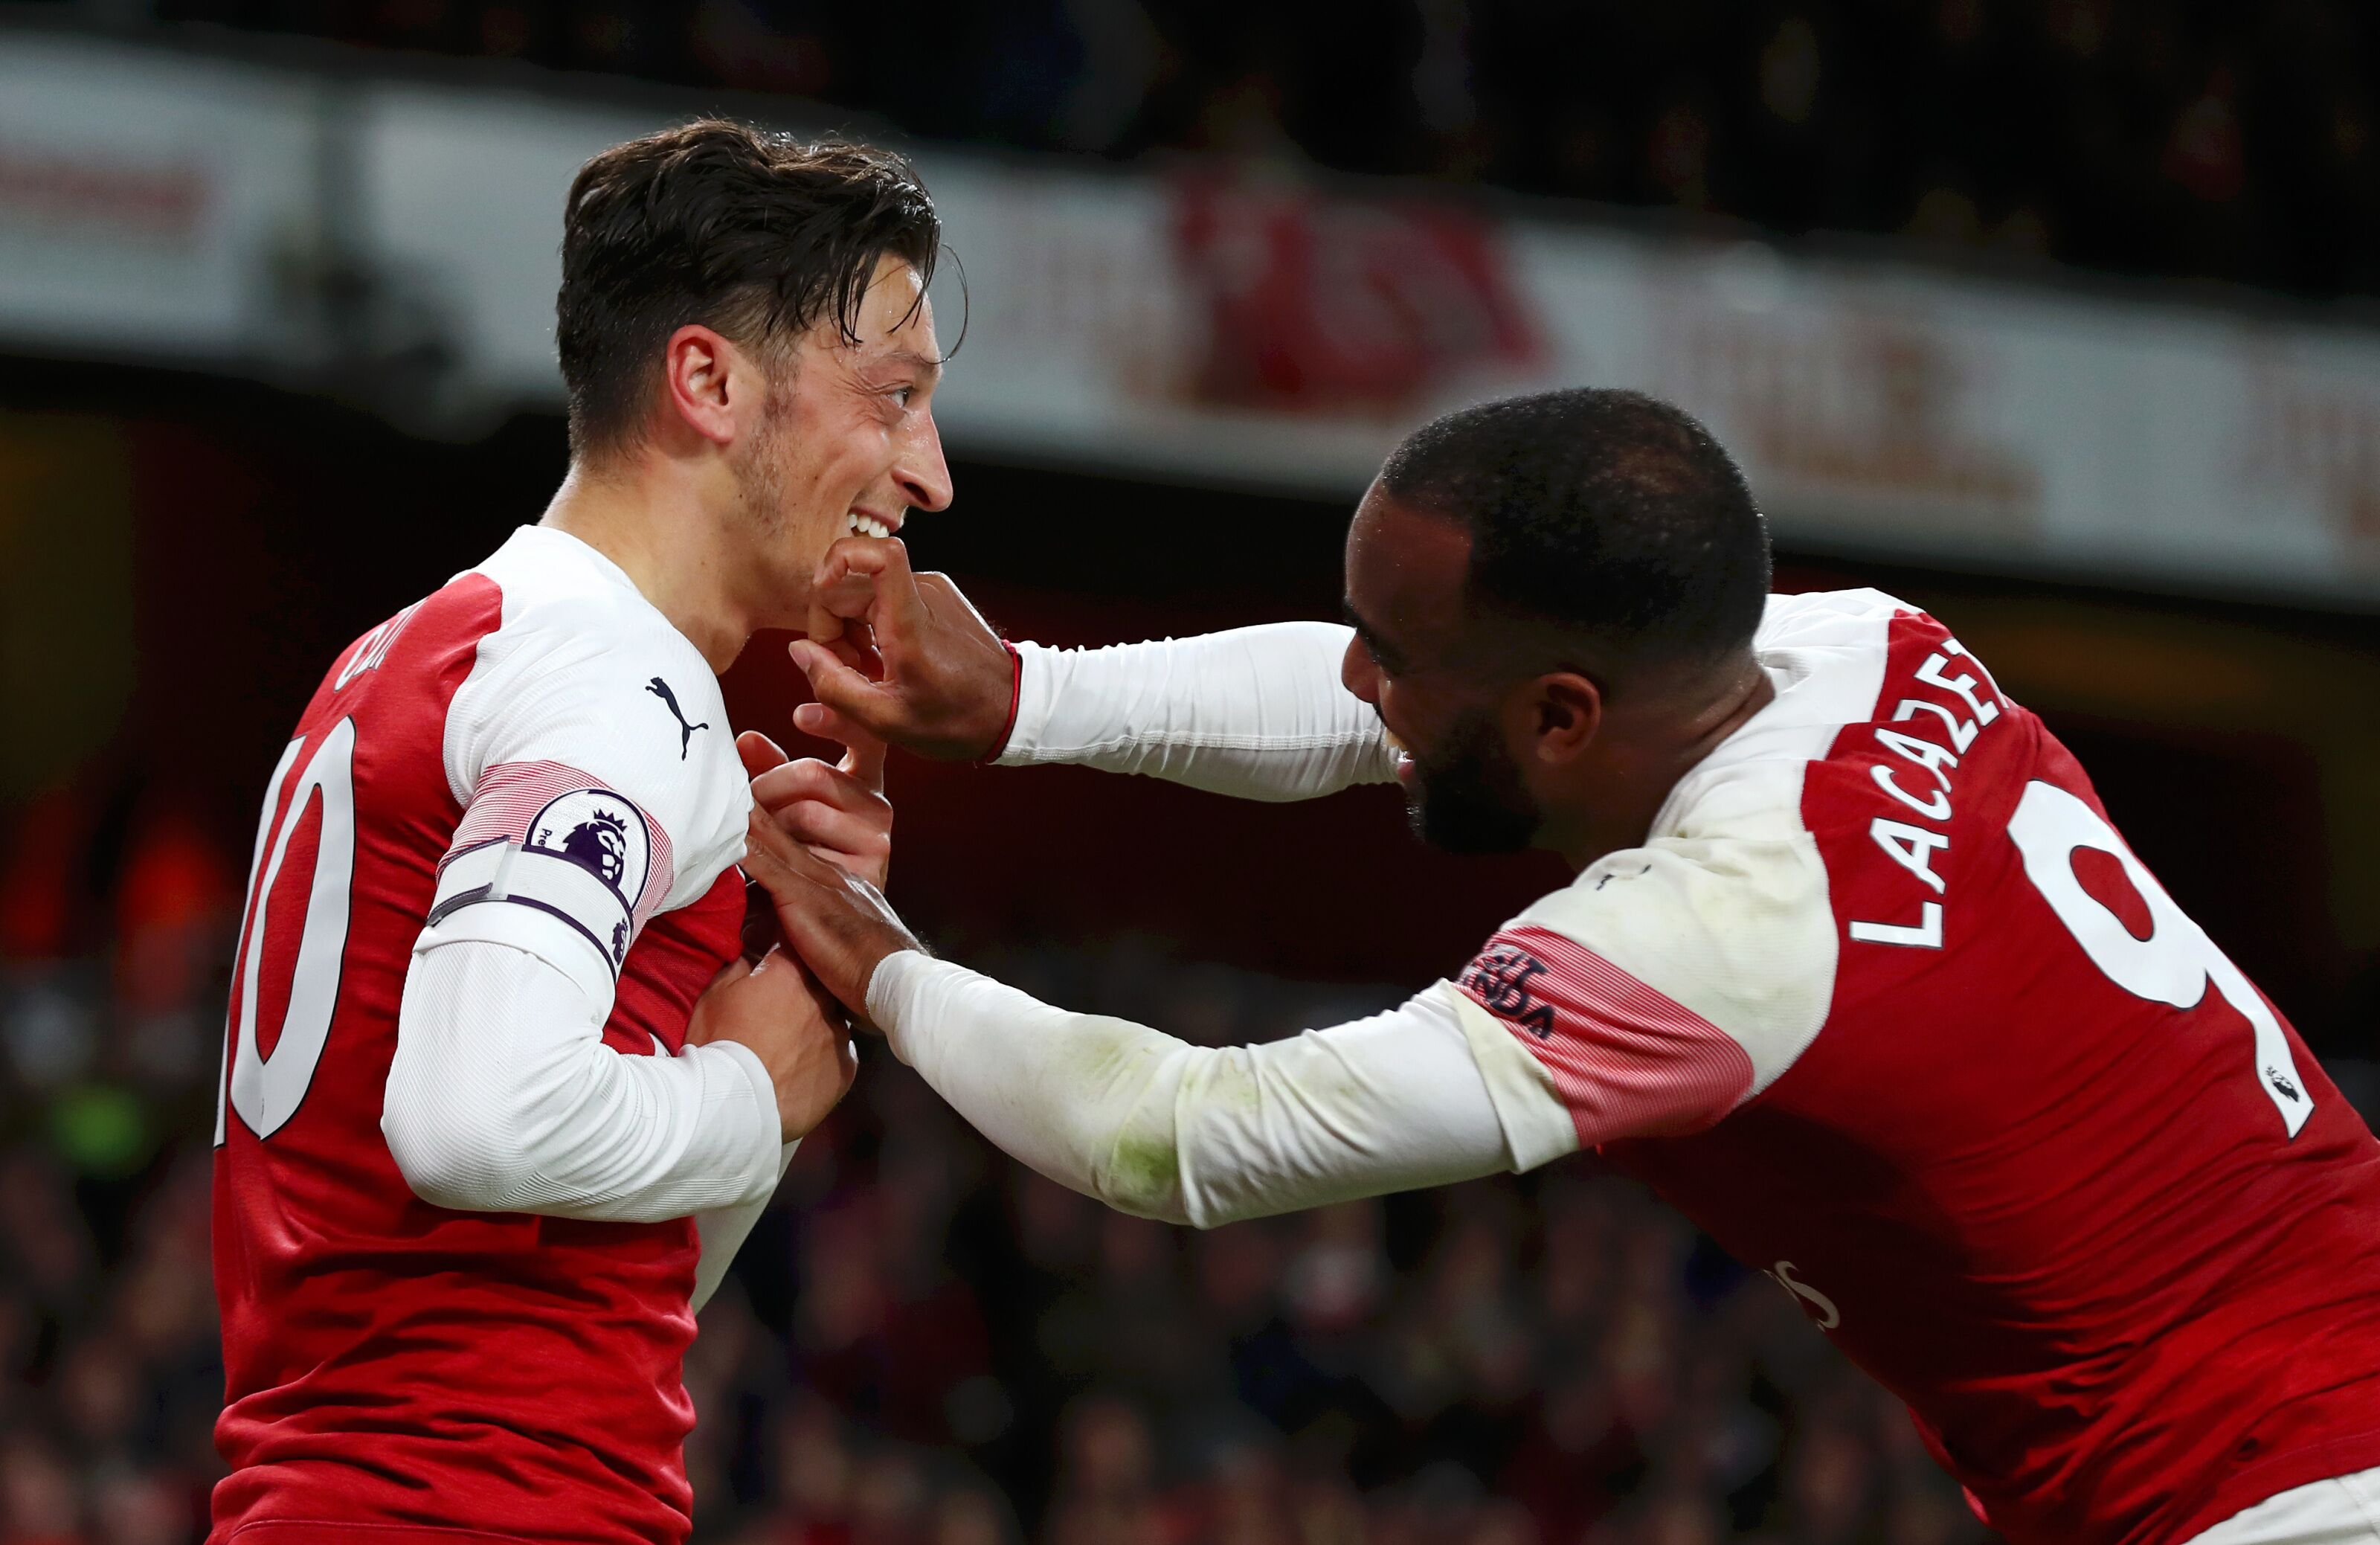 Arsenal: Unai Emery is really doing something new - Pain In The Arsenal